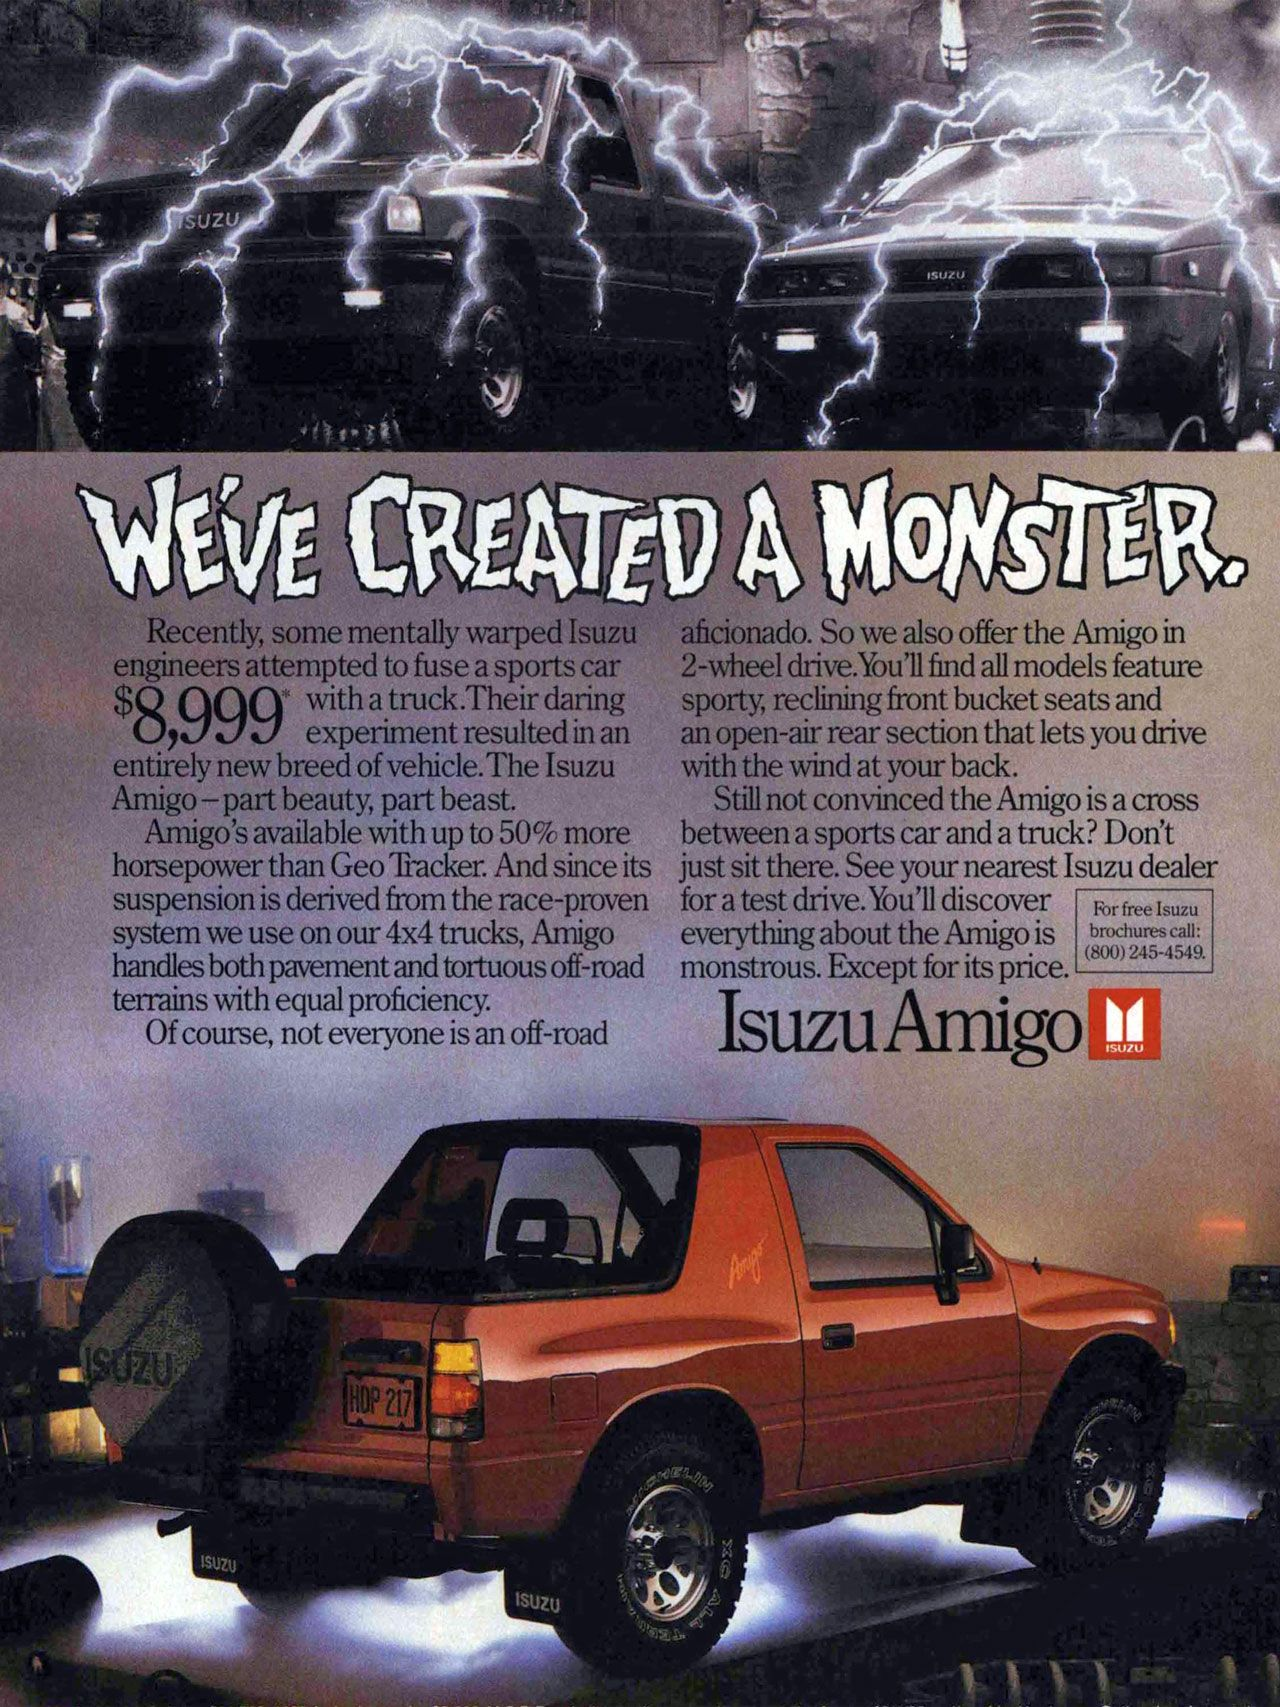 We've created a monster. The Isuzu Amigo. Recently, some mentally warped Isuzu engineers attempted to fuse a sports car $ 01001' with atruck.Their daring UW Z7 experiment resulted in an entirely new breed of vehicle.The Isuzu Amigo — part beauty, part beast. Amigo's available with up to 50% more horsepower than Geo 'Packer. And since its suspension is derived from the race-proven system we use on our 4x4 trucks, Amigo handles both pavement and tortuous off-mad terrains with equal proficiency. Of course, not everyone is an off-road aficionado. So we also offer the Amigo in 2-wheel chive.You'll find all models feature sporty, reclining front bucket seats and an open-air rear section that lets you drive with the wind at your back. Still not convinced the Amigo is a cross between a sports car and a truck? Don't just sit there. See your nearest Isuzu dealer for a test drive. You'll discover everything about the Amigo is monstrous. Except for its price. For free Isuzu brochures call: (8(X)) 245-4549. Isuzu Amigo